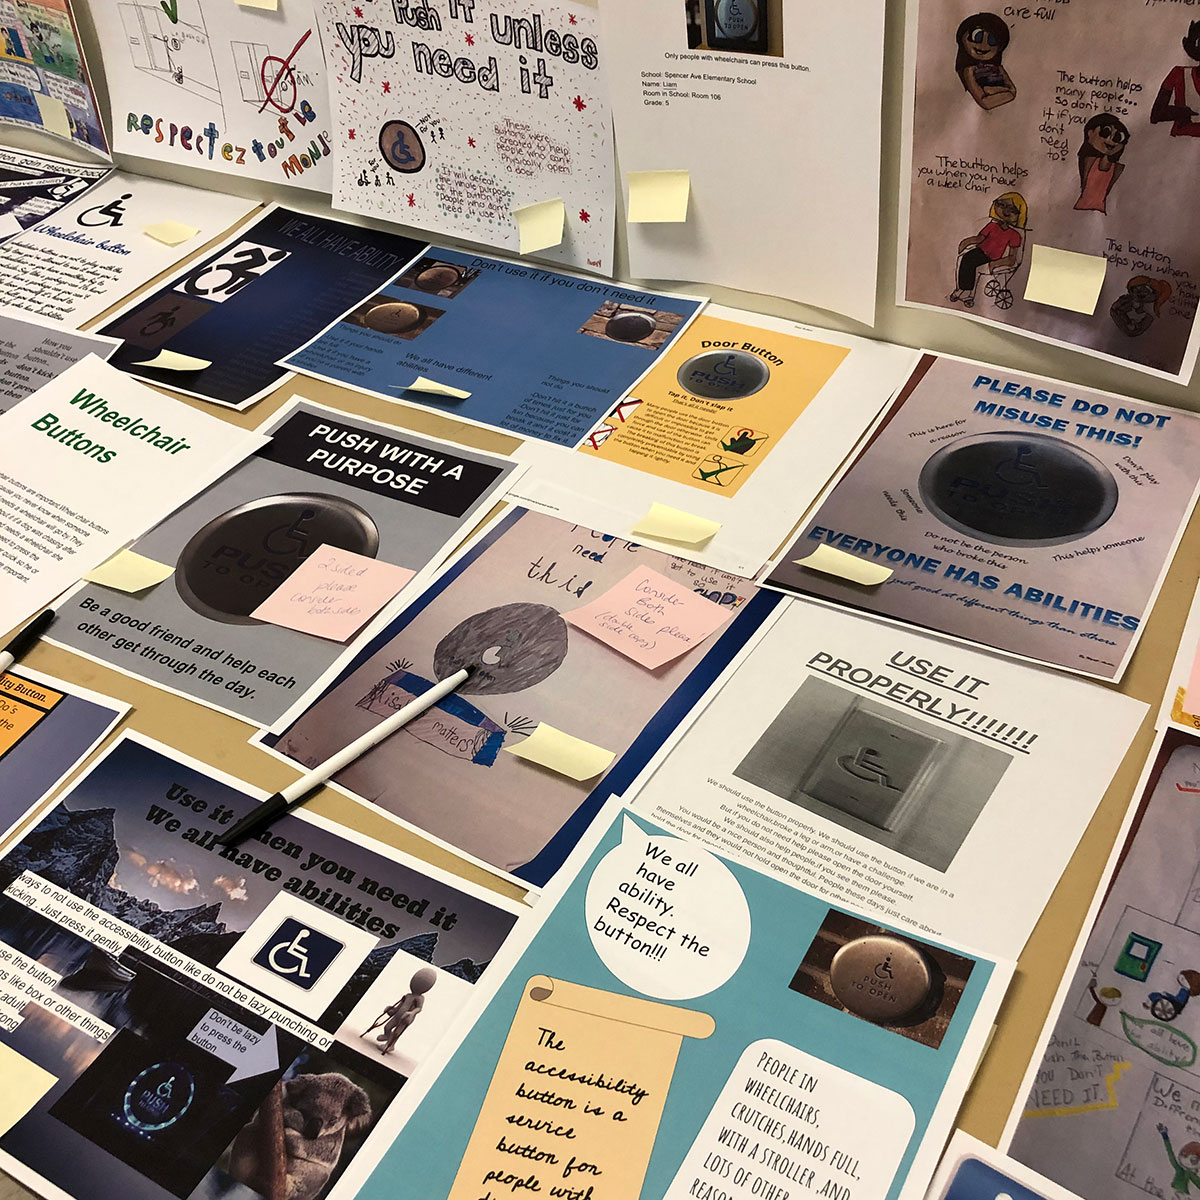 UGDSB students created announcements and posters around the proper use of accessibility door buttons, December 2018.